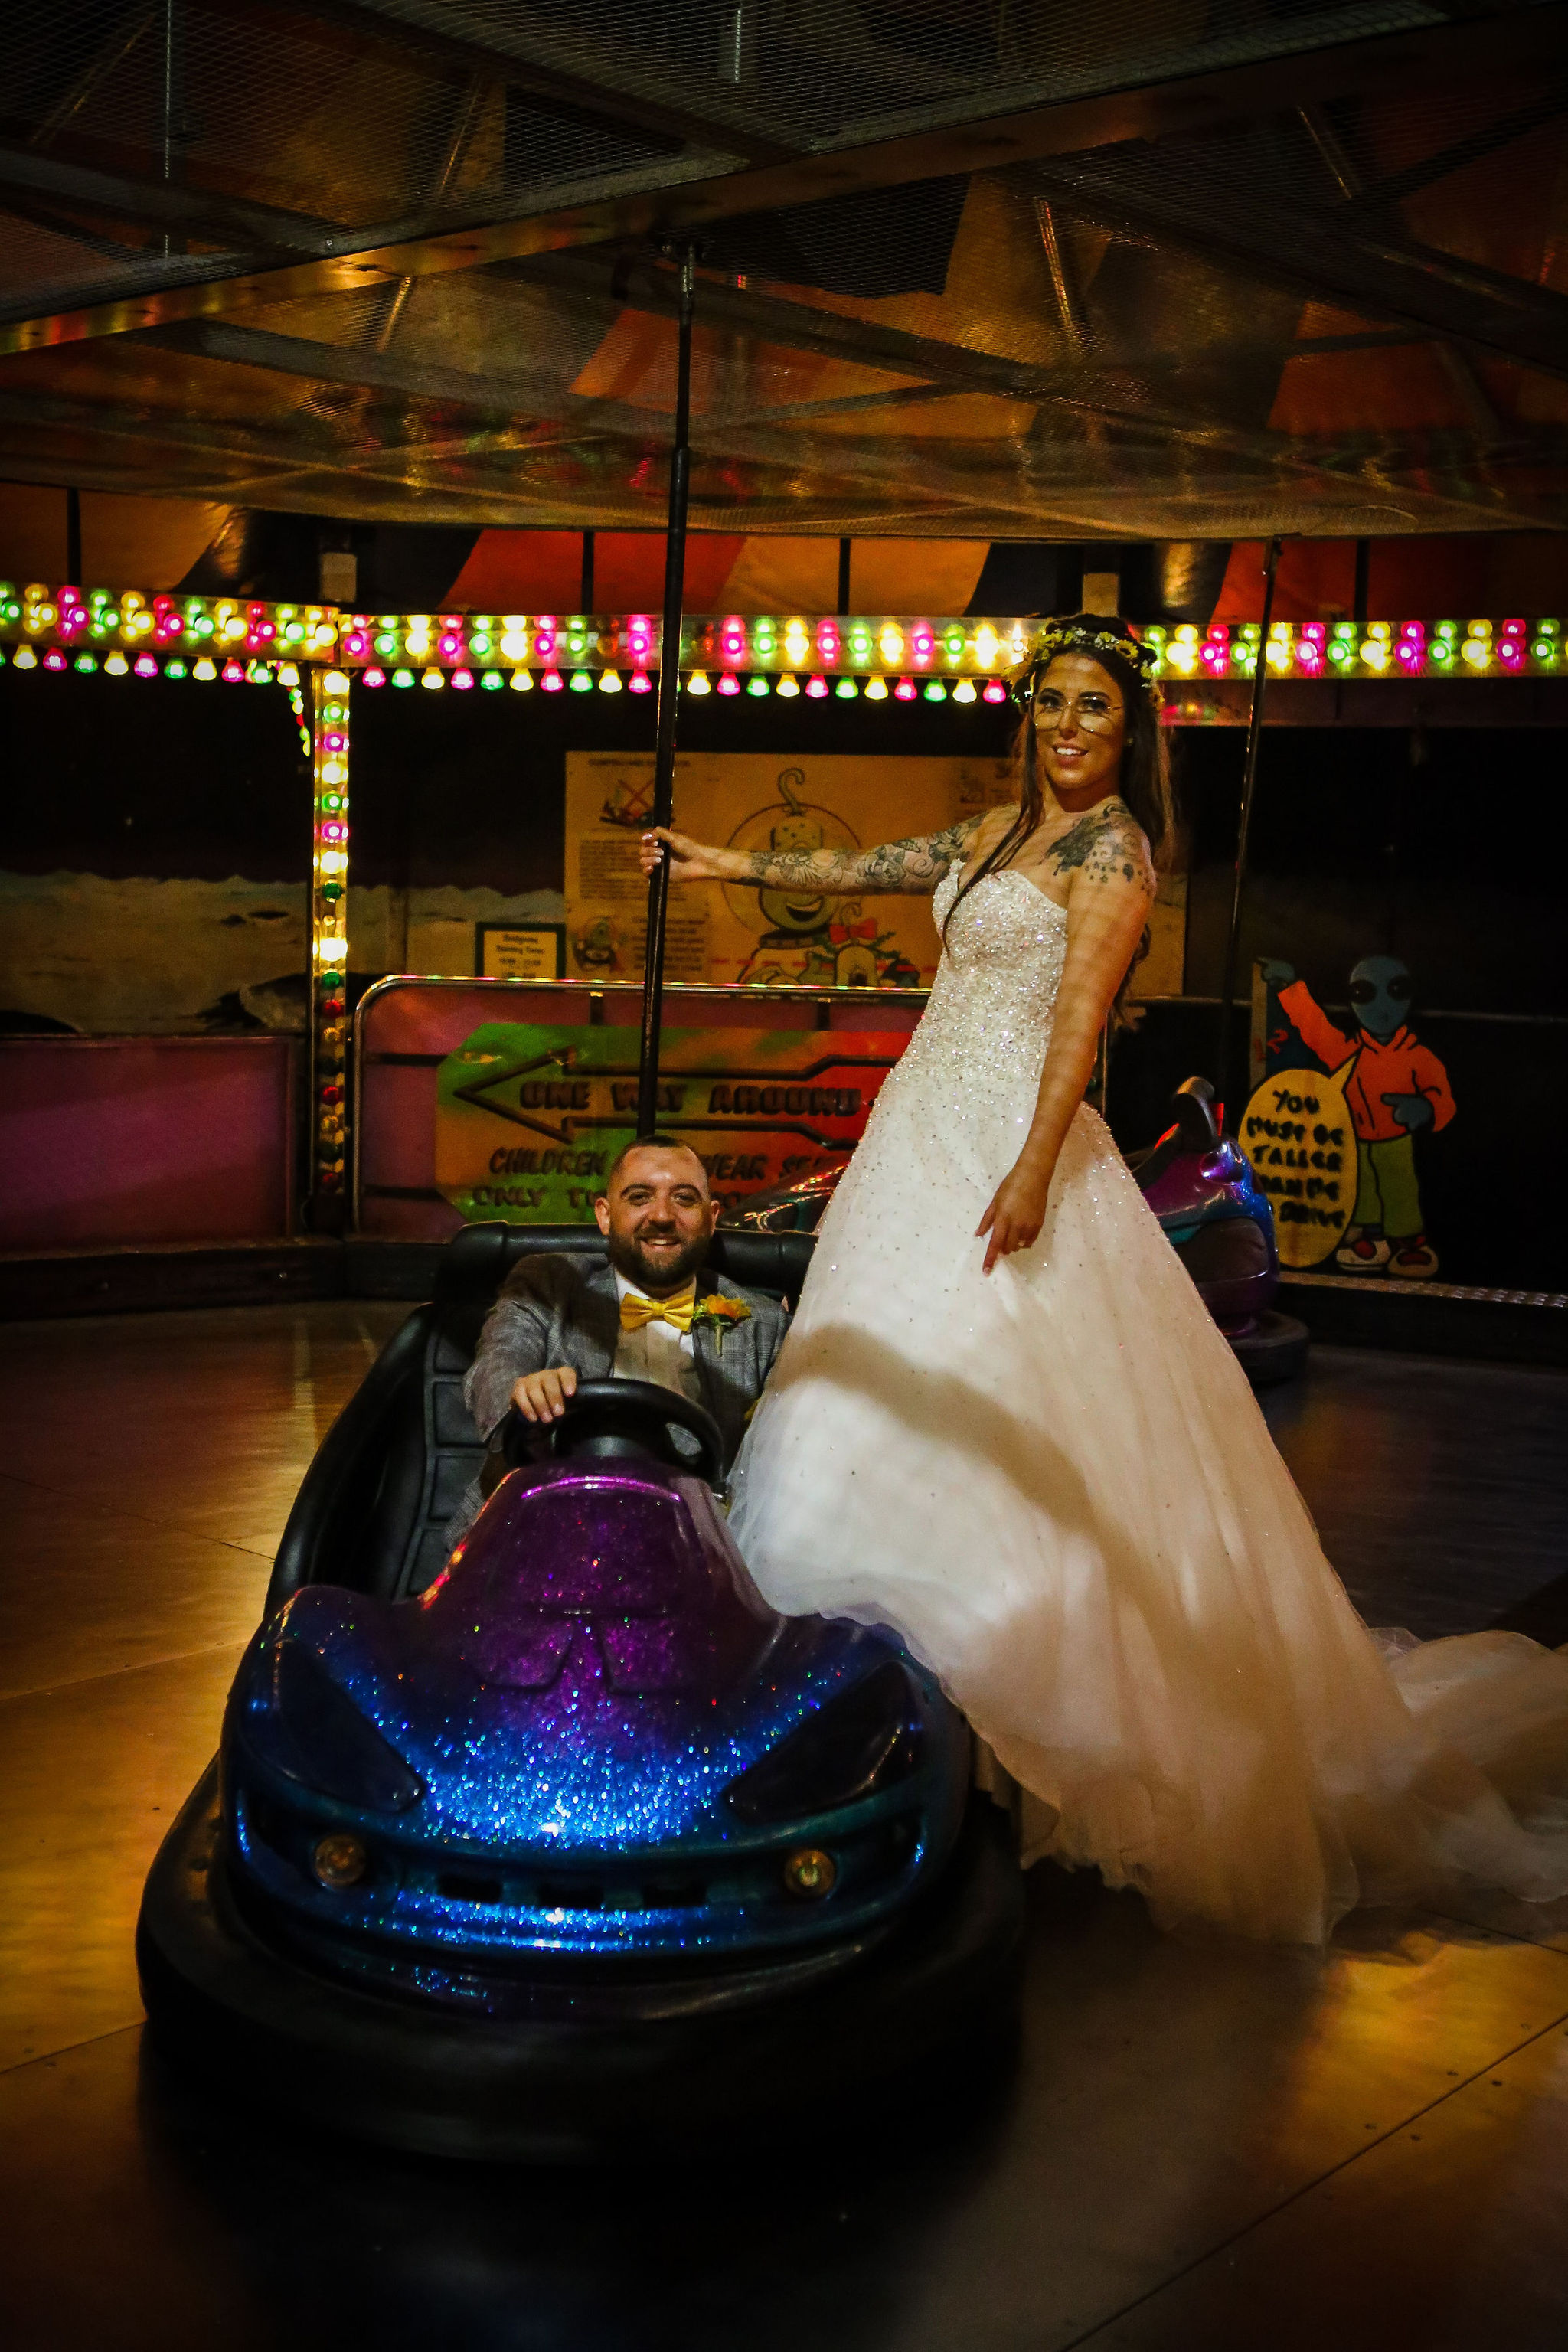 Harriet&Rhys Wedding - quirky wedding with dodgems - funfair at a wedding